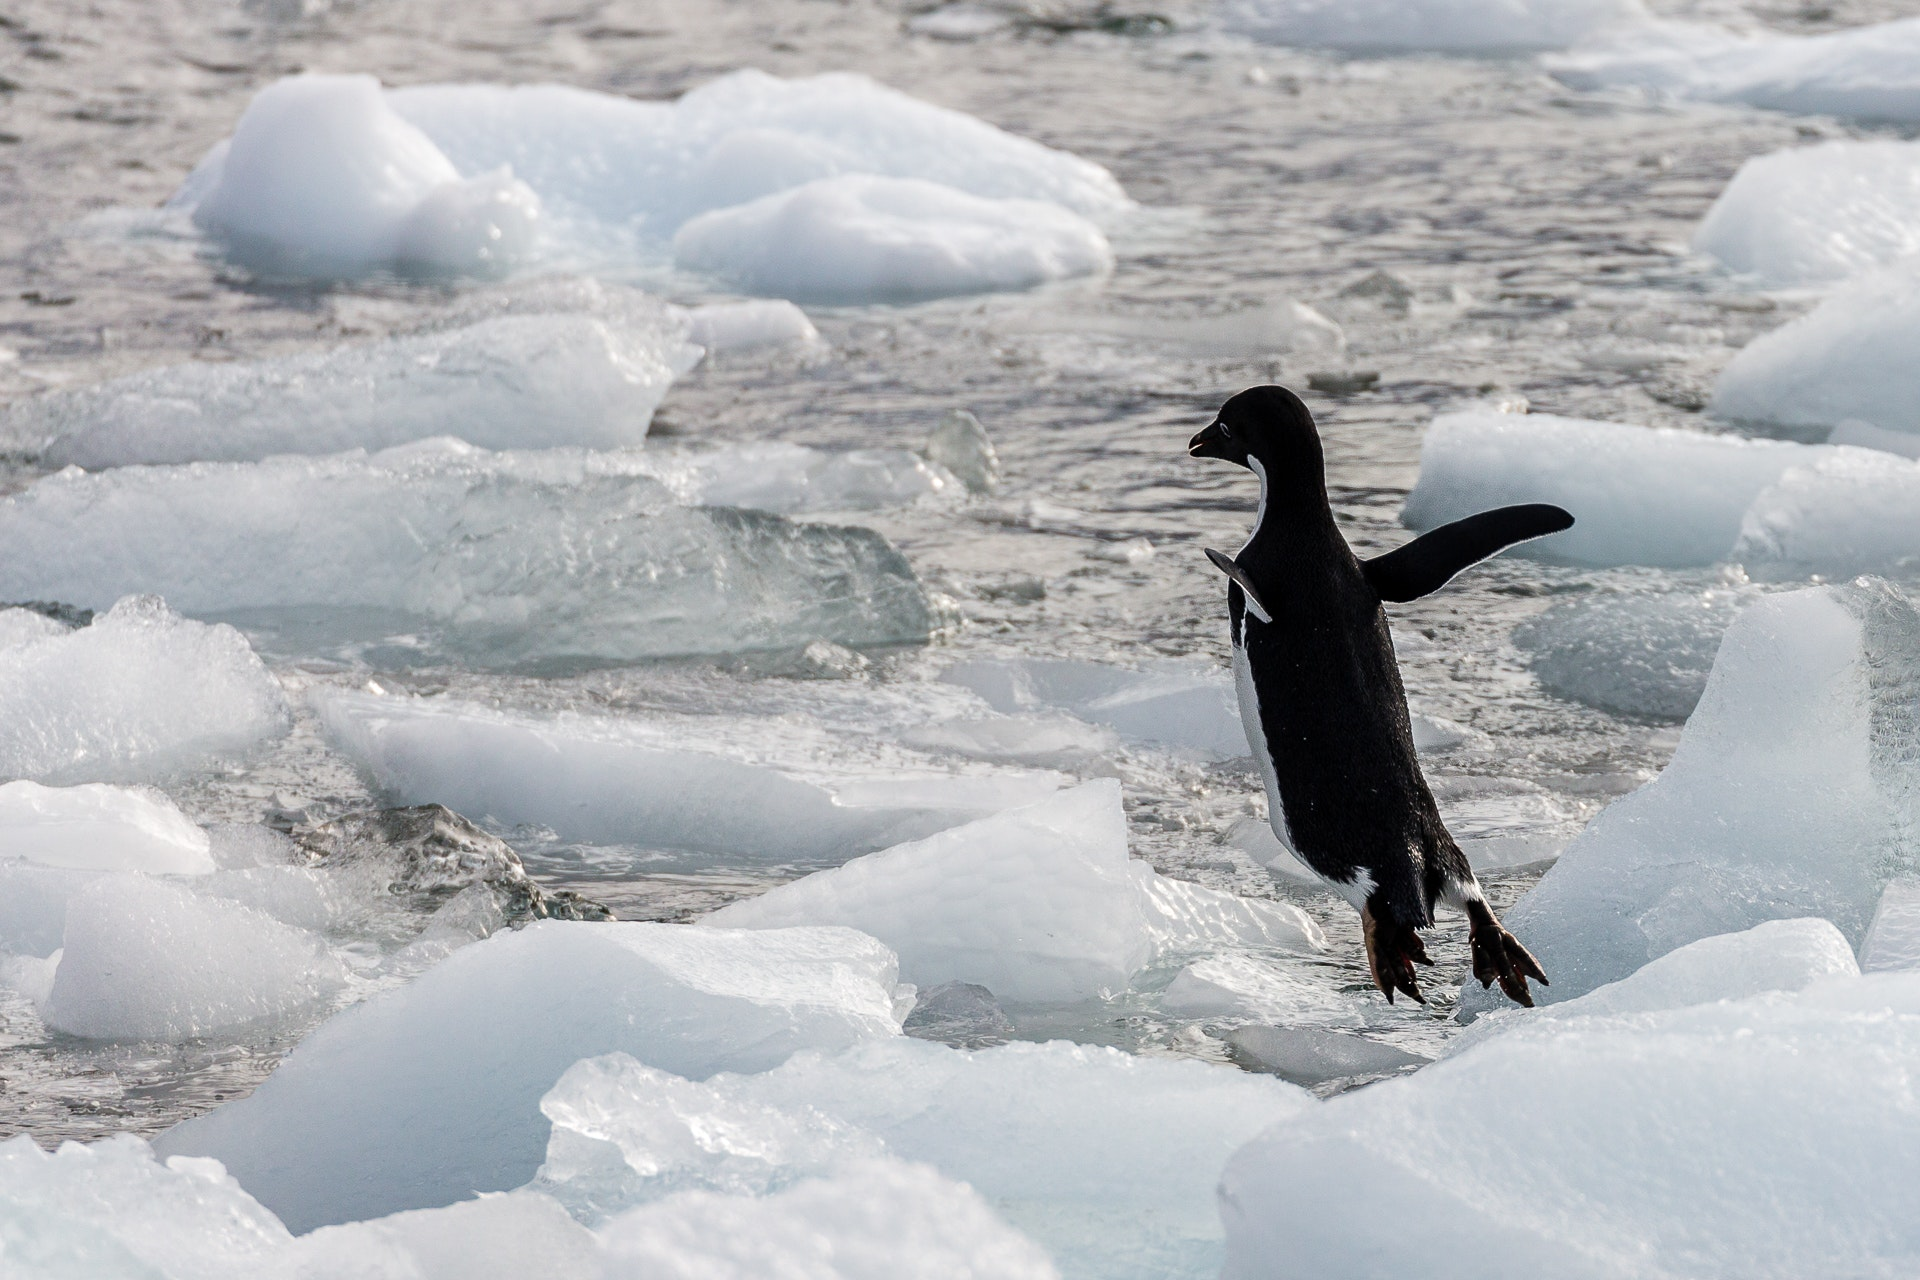 Adelie Penguin diving into the water